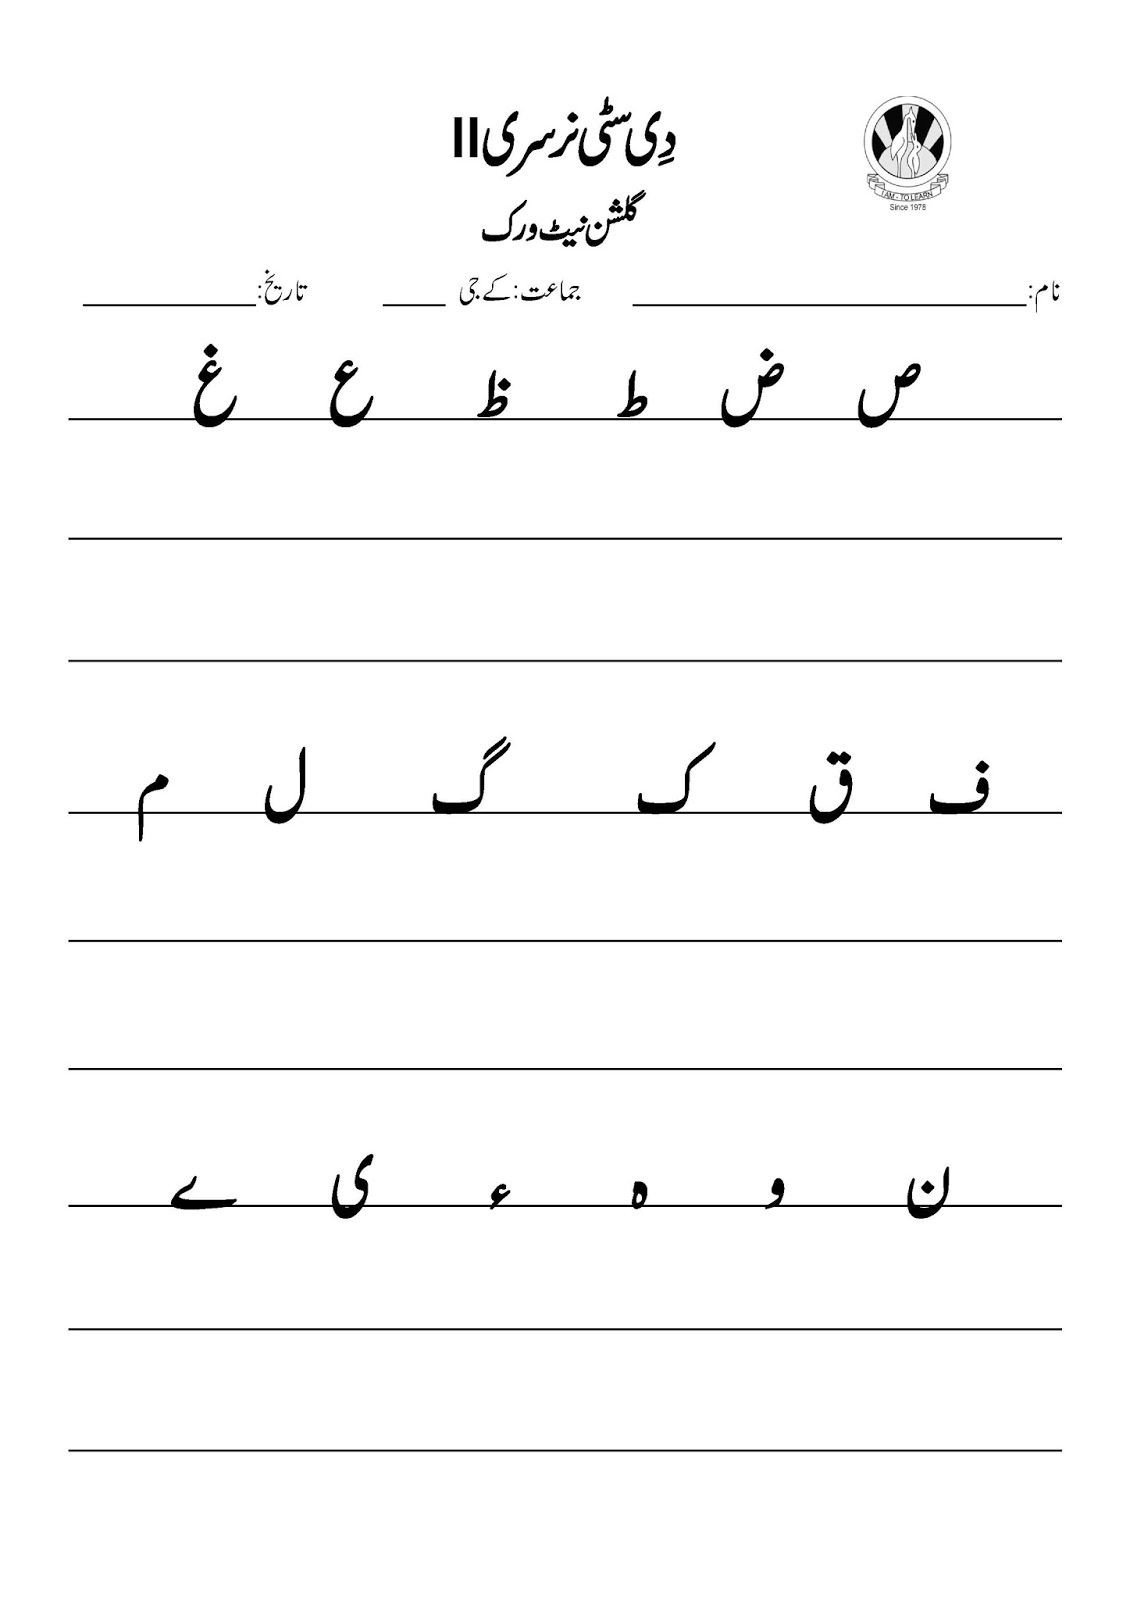 Urdu Alphabet Worksheet Sr Gulshan the City Nursery Ii Urdu First Term